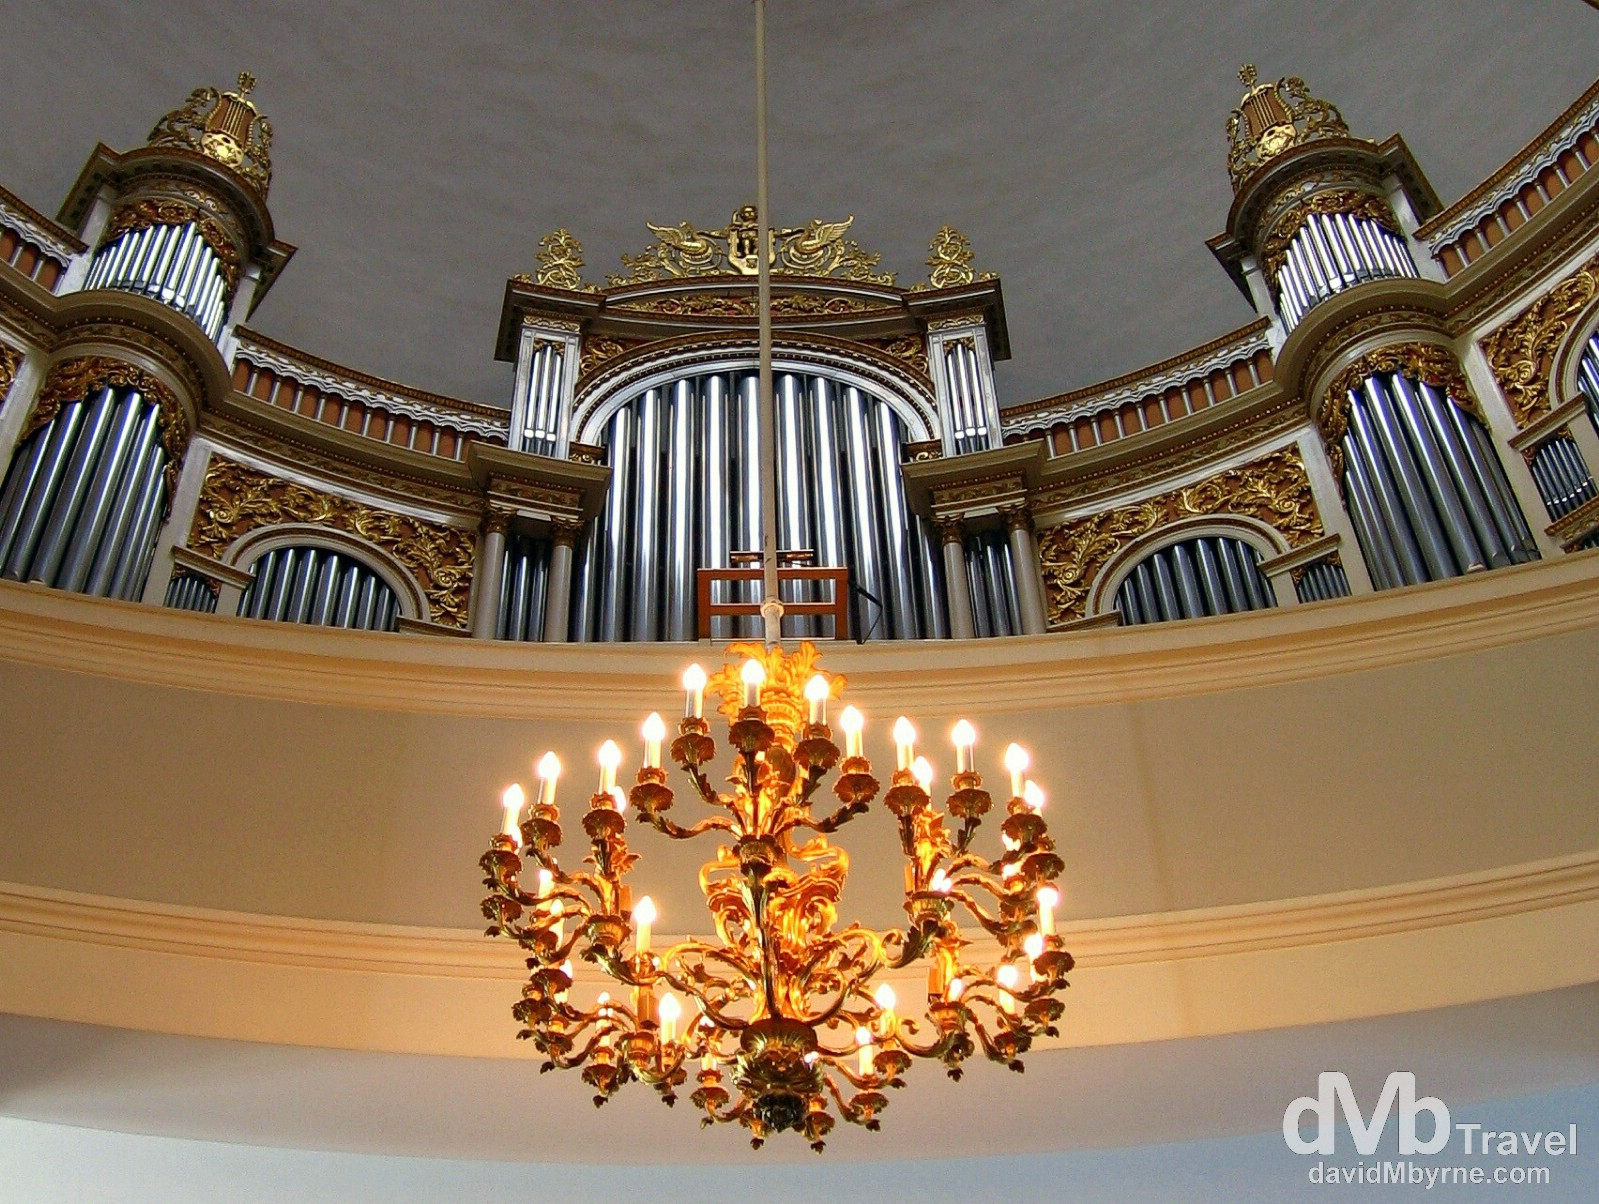 The organ of the cathedral in Helsinki, Finland. March 1, 2006.